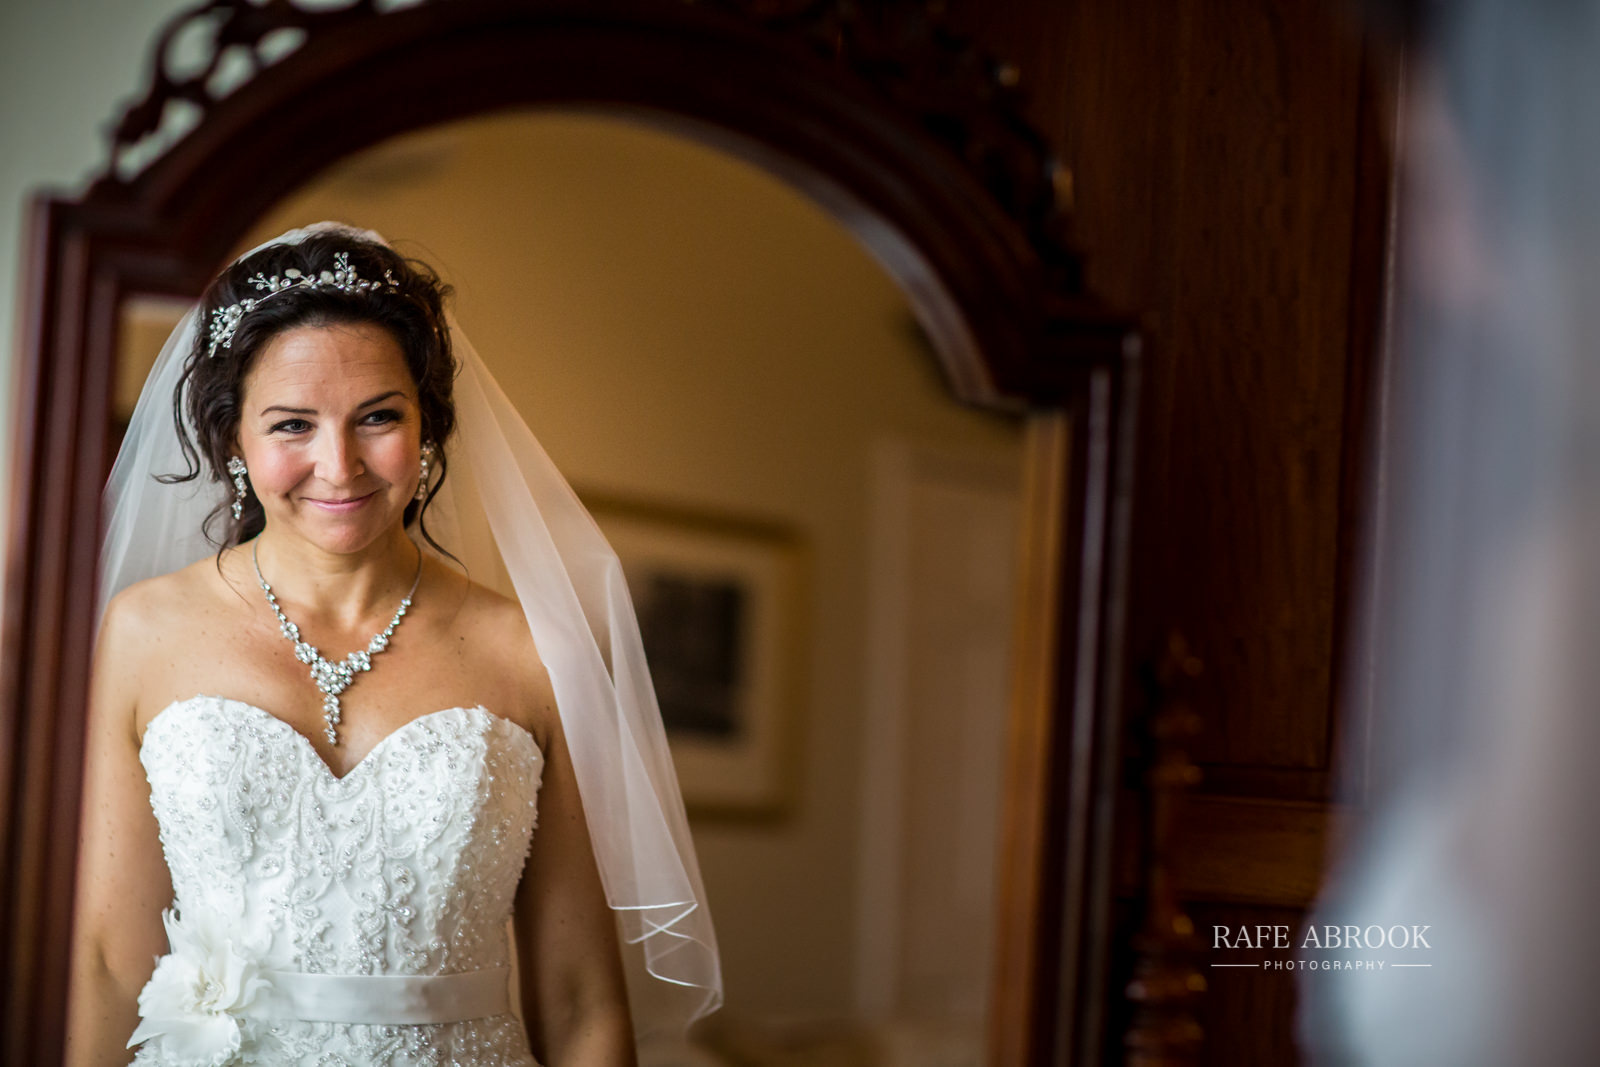 goldsborough hall wedding harrogate knaresborough yorkshire hertfordshire wedding photographer-1070.jpg